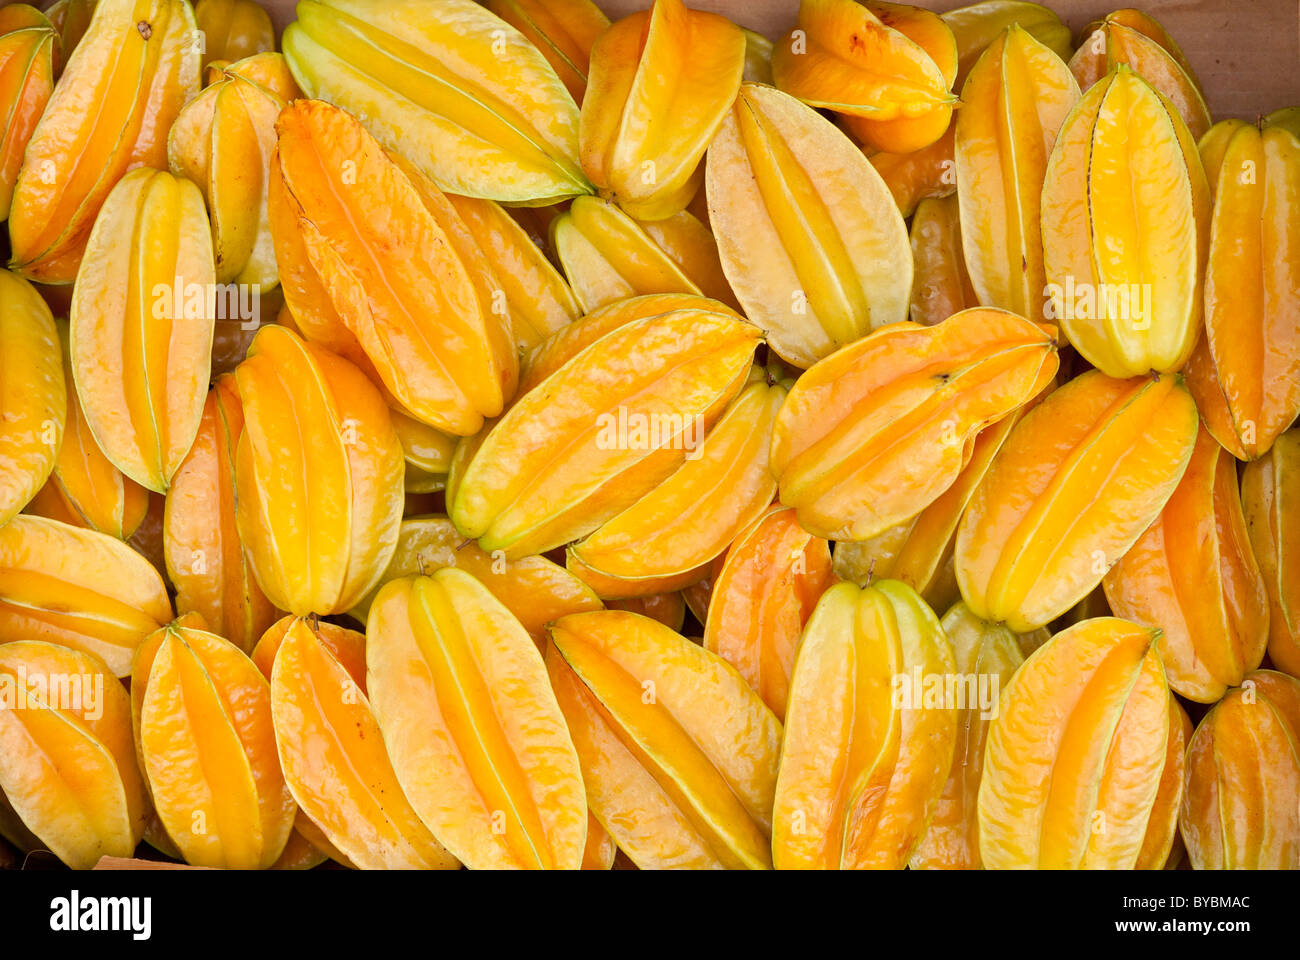 A Crate of Star Fruit. A box full of fine ripe star fruit awaits buyers at the regular Thursday Farmer's Market. - Stock Image